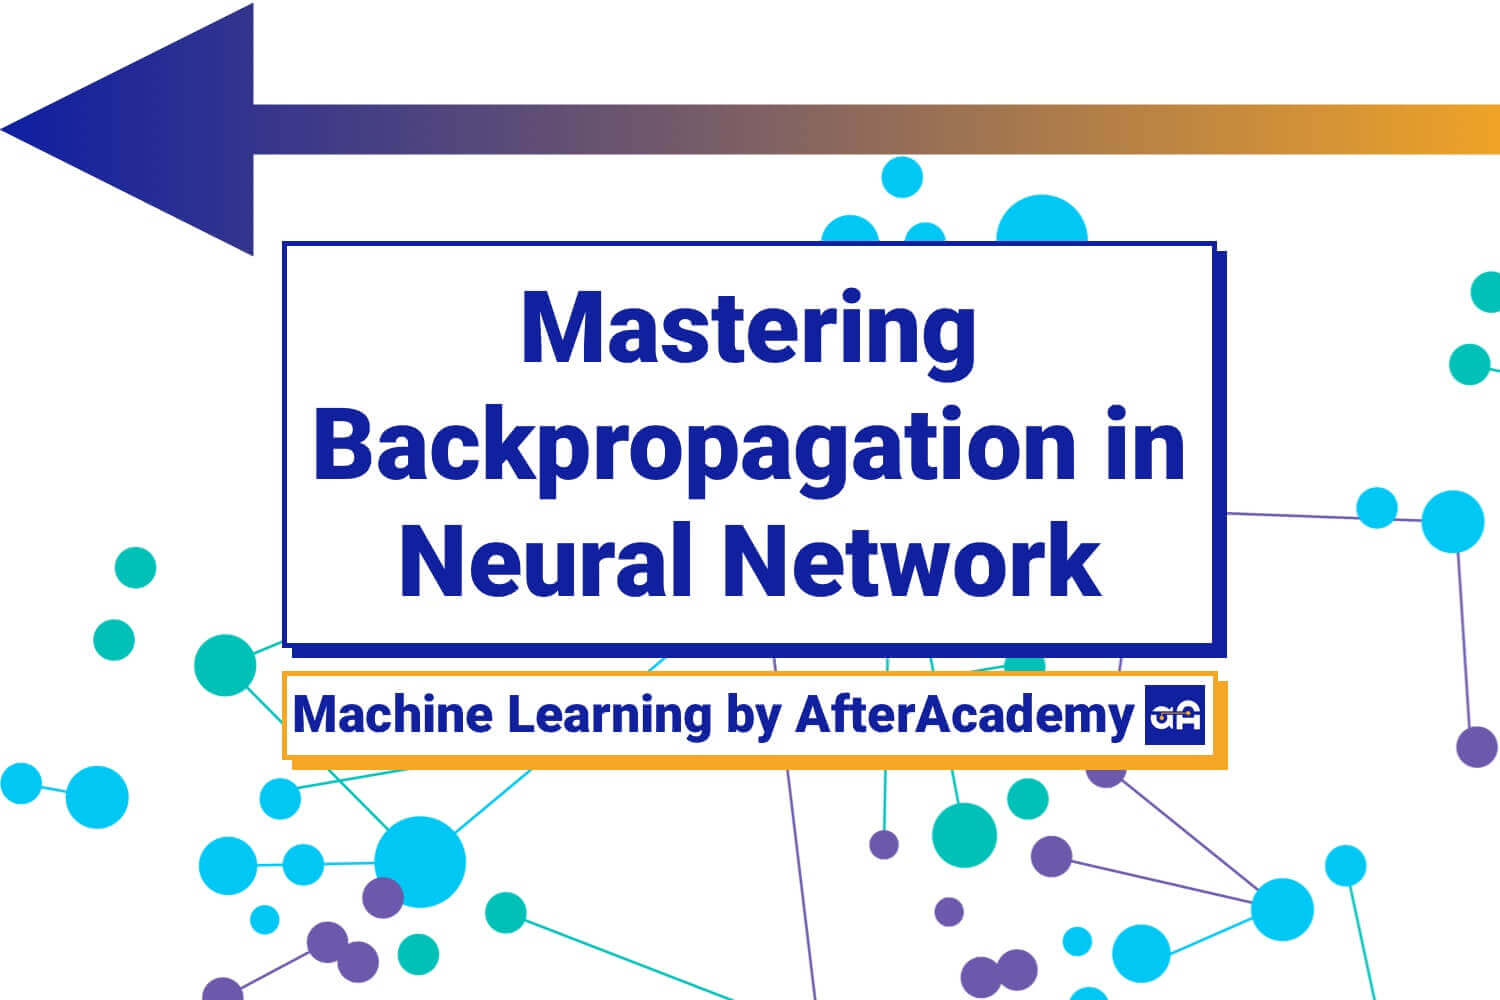 Mastering Backpropagation in Neural Network